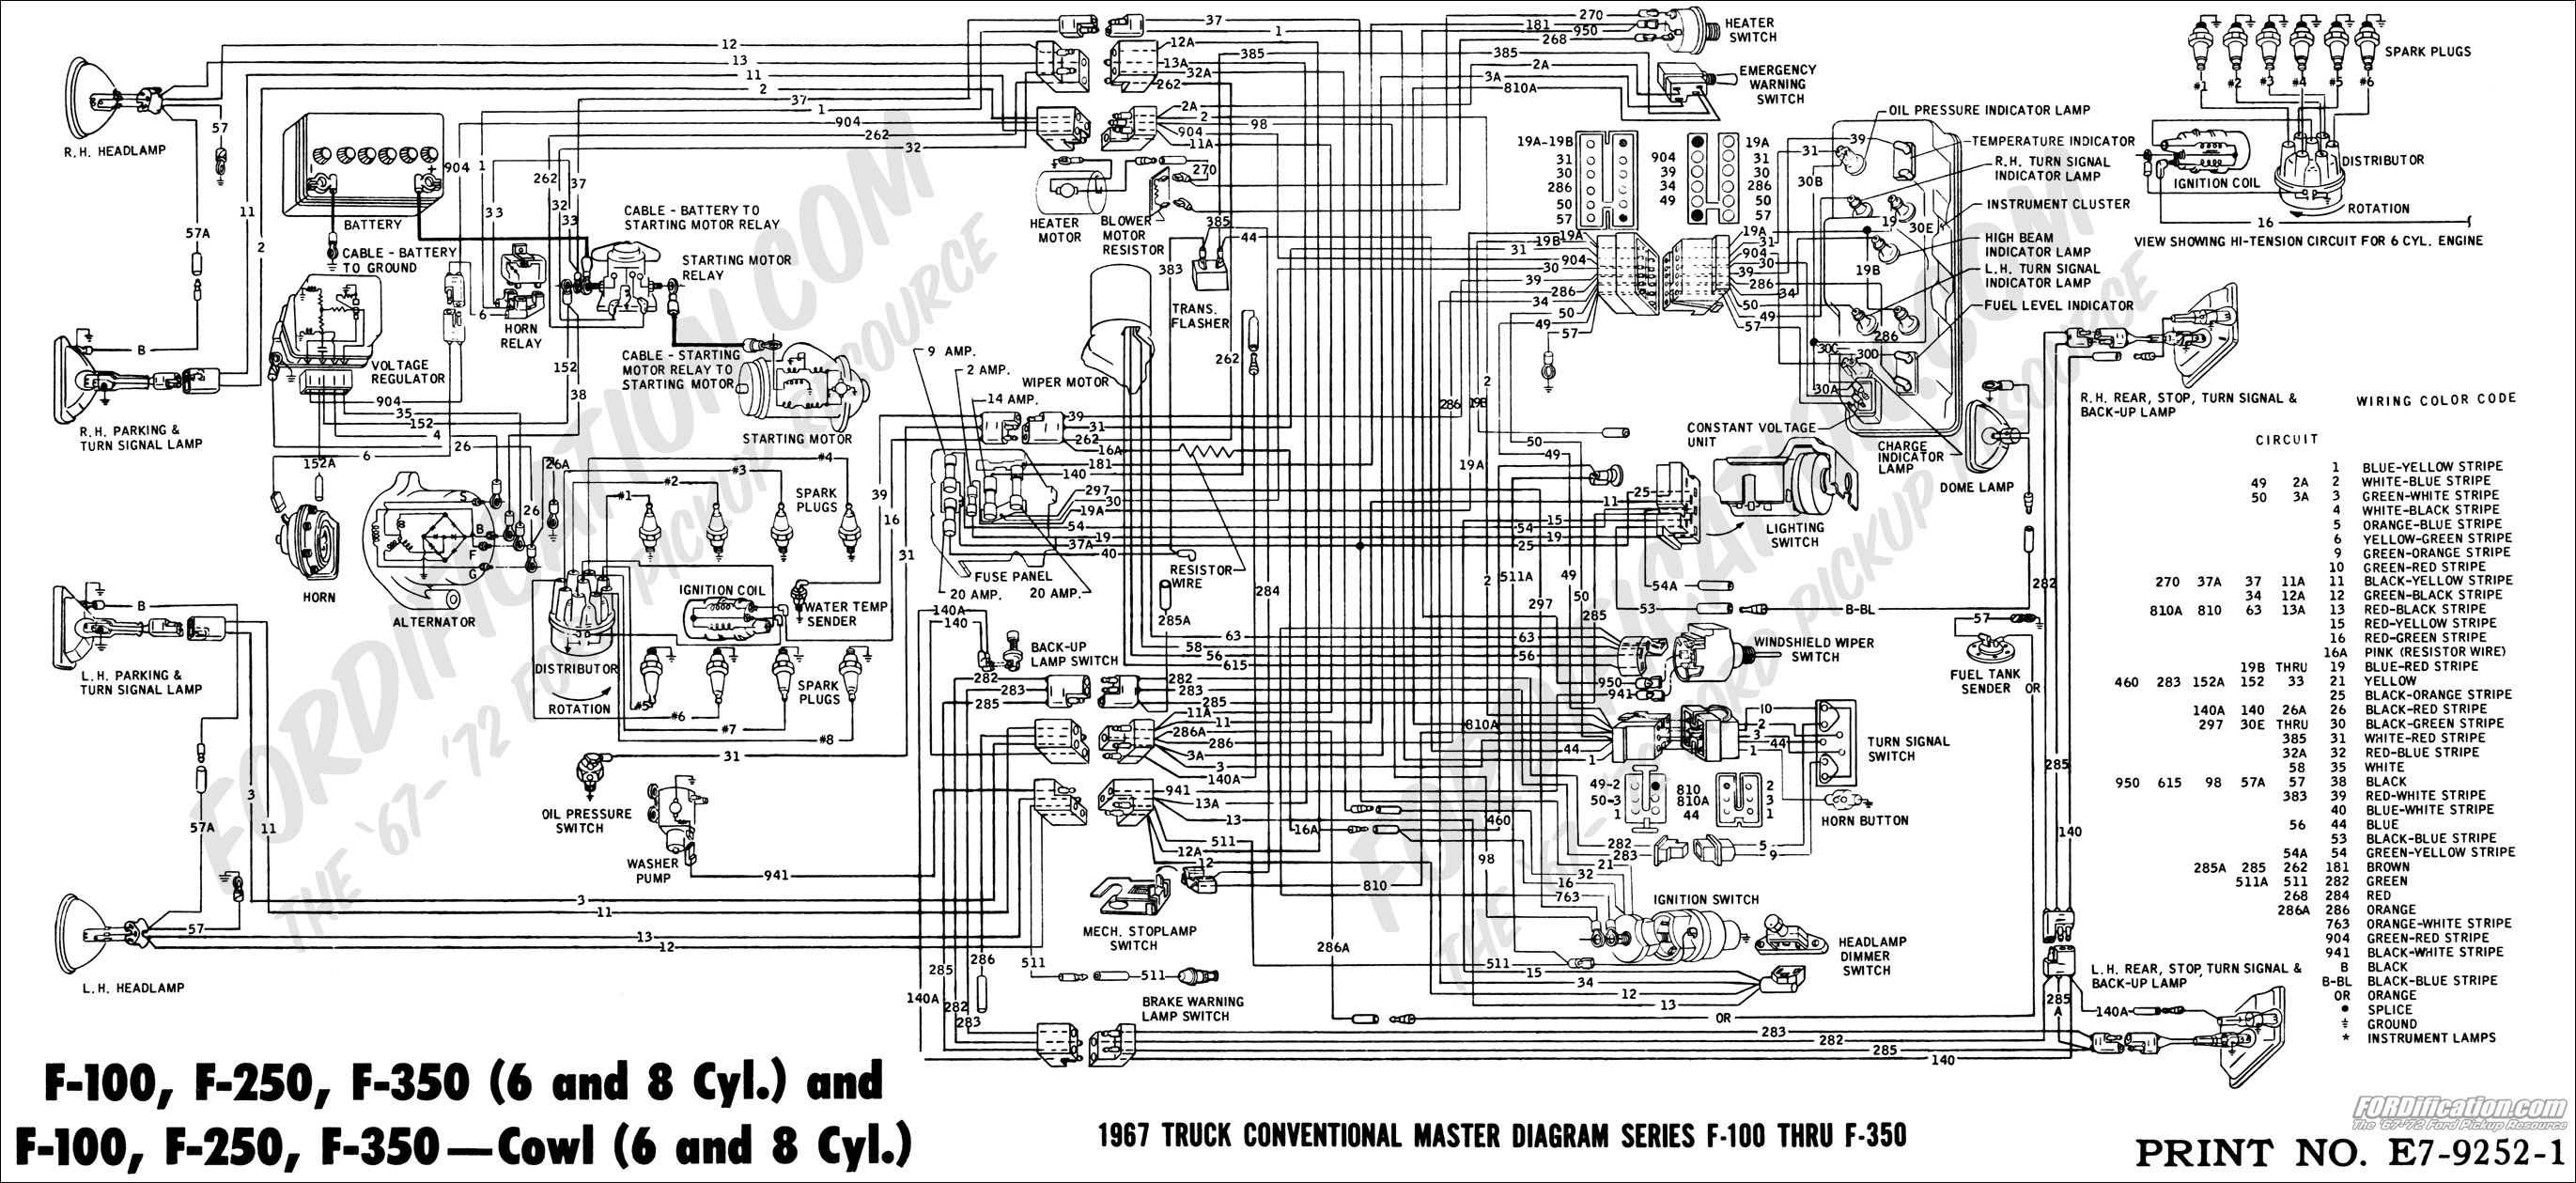 86 ford f 150 wiring diagram wiring diagramwiring diagram for a 1986 ford f150 17 nkl capecoral 1985 ford f 150 wiring diagram 86 ford f 150 wiring diagram